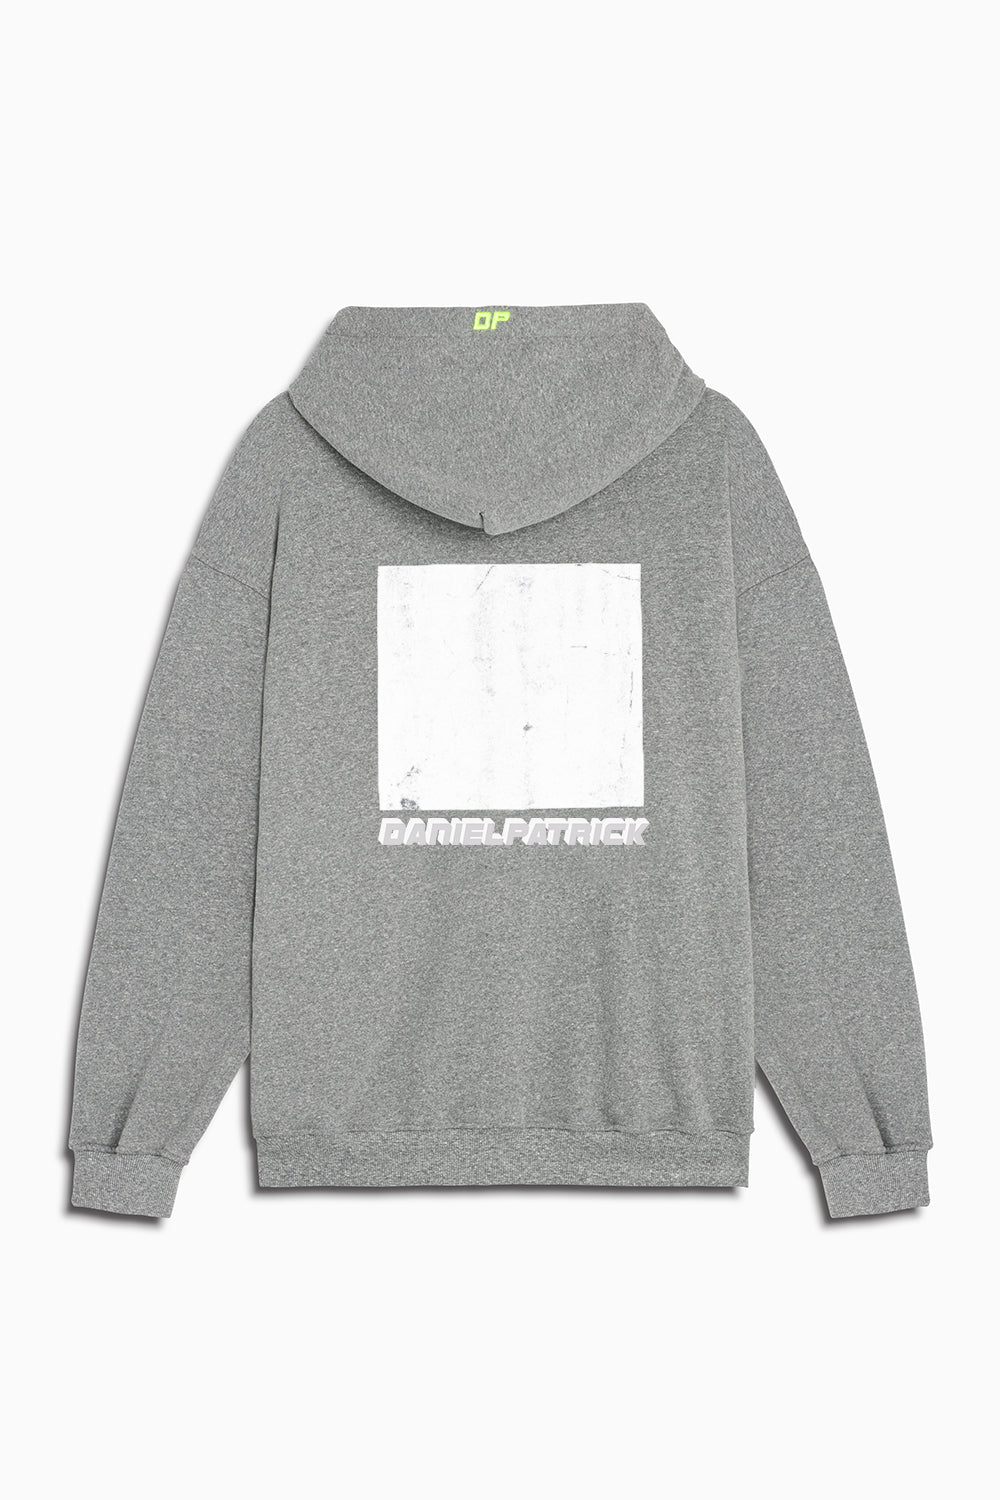 distressed square hoodie in heather grey/white by daniel patrick